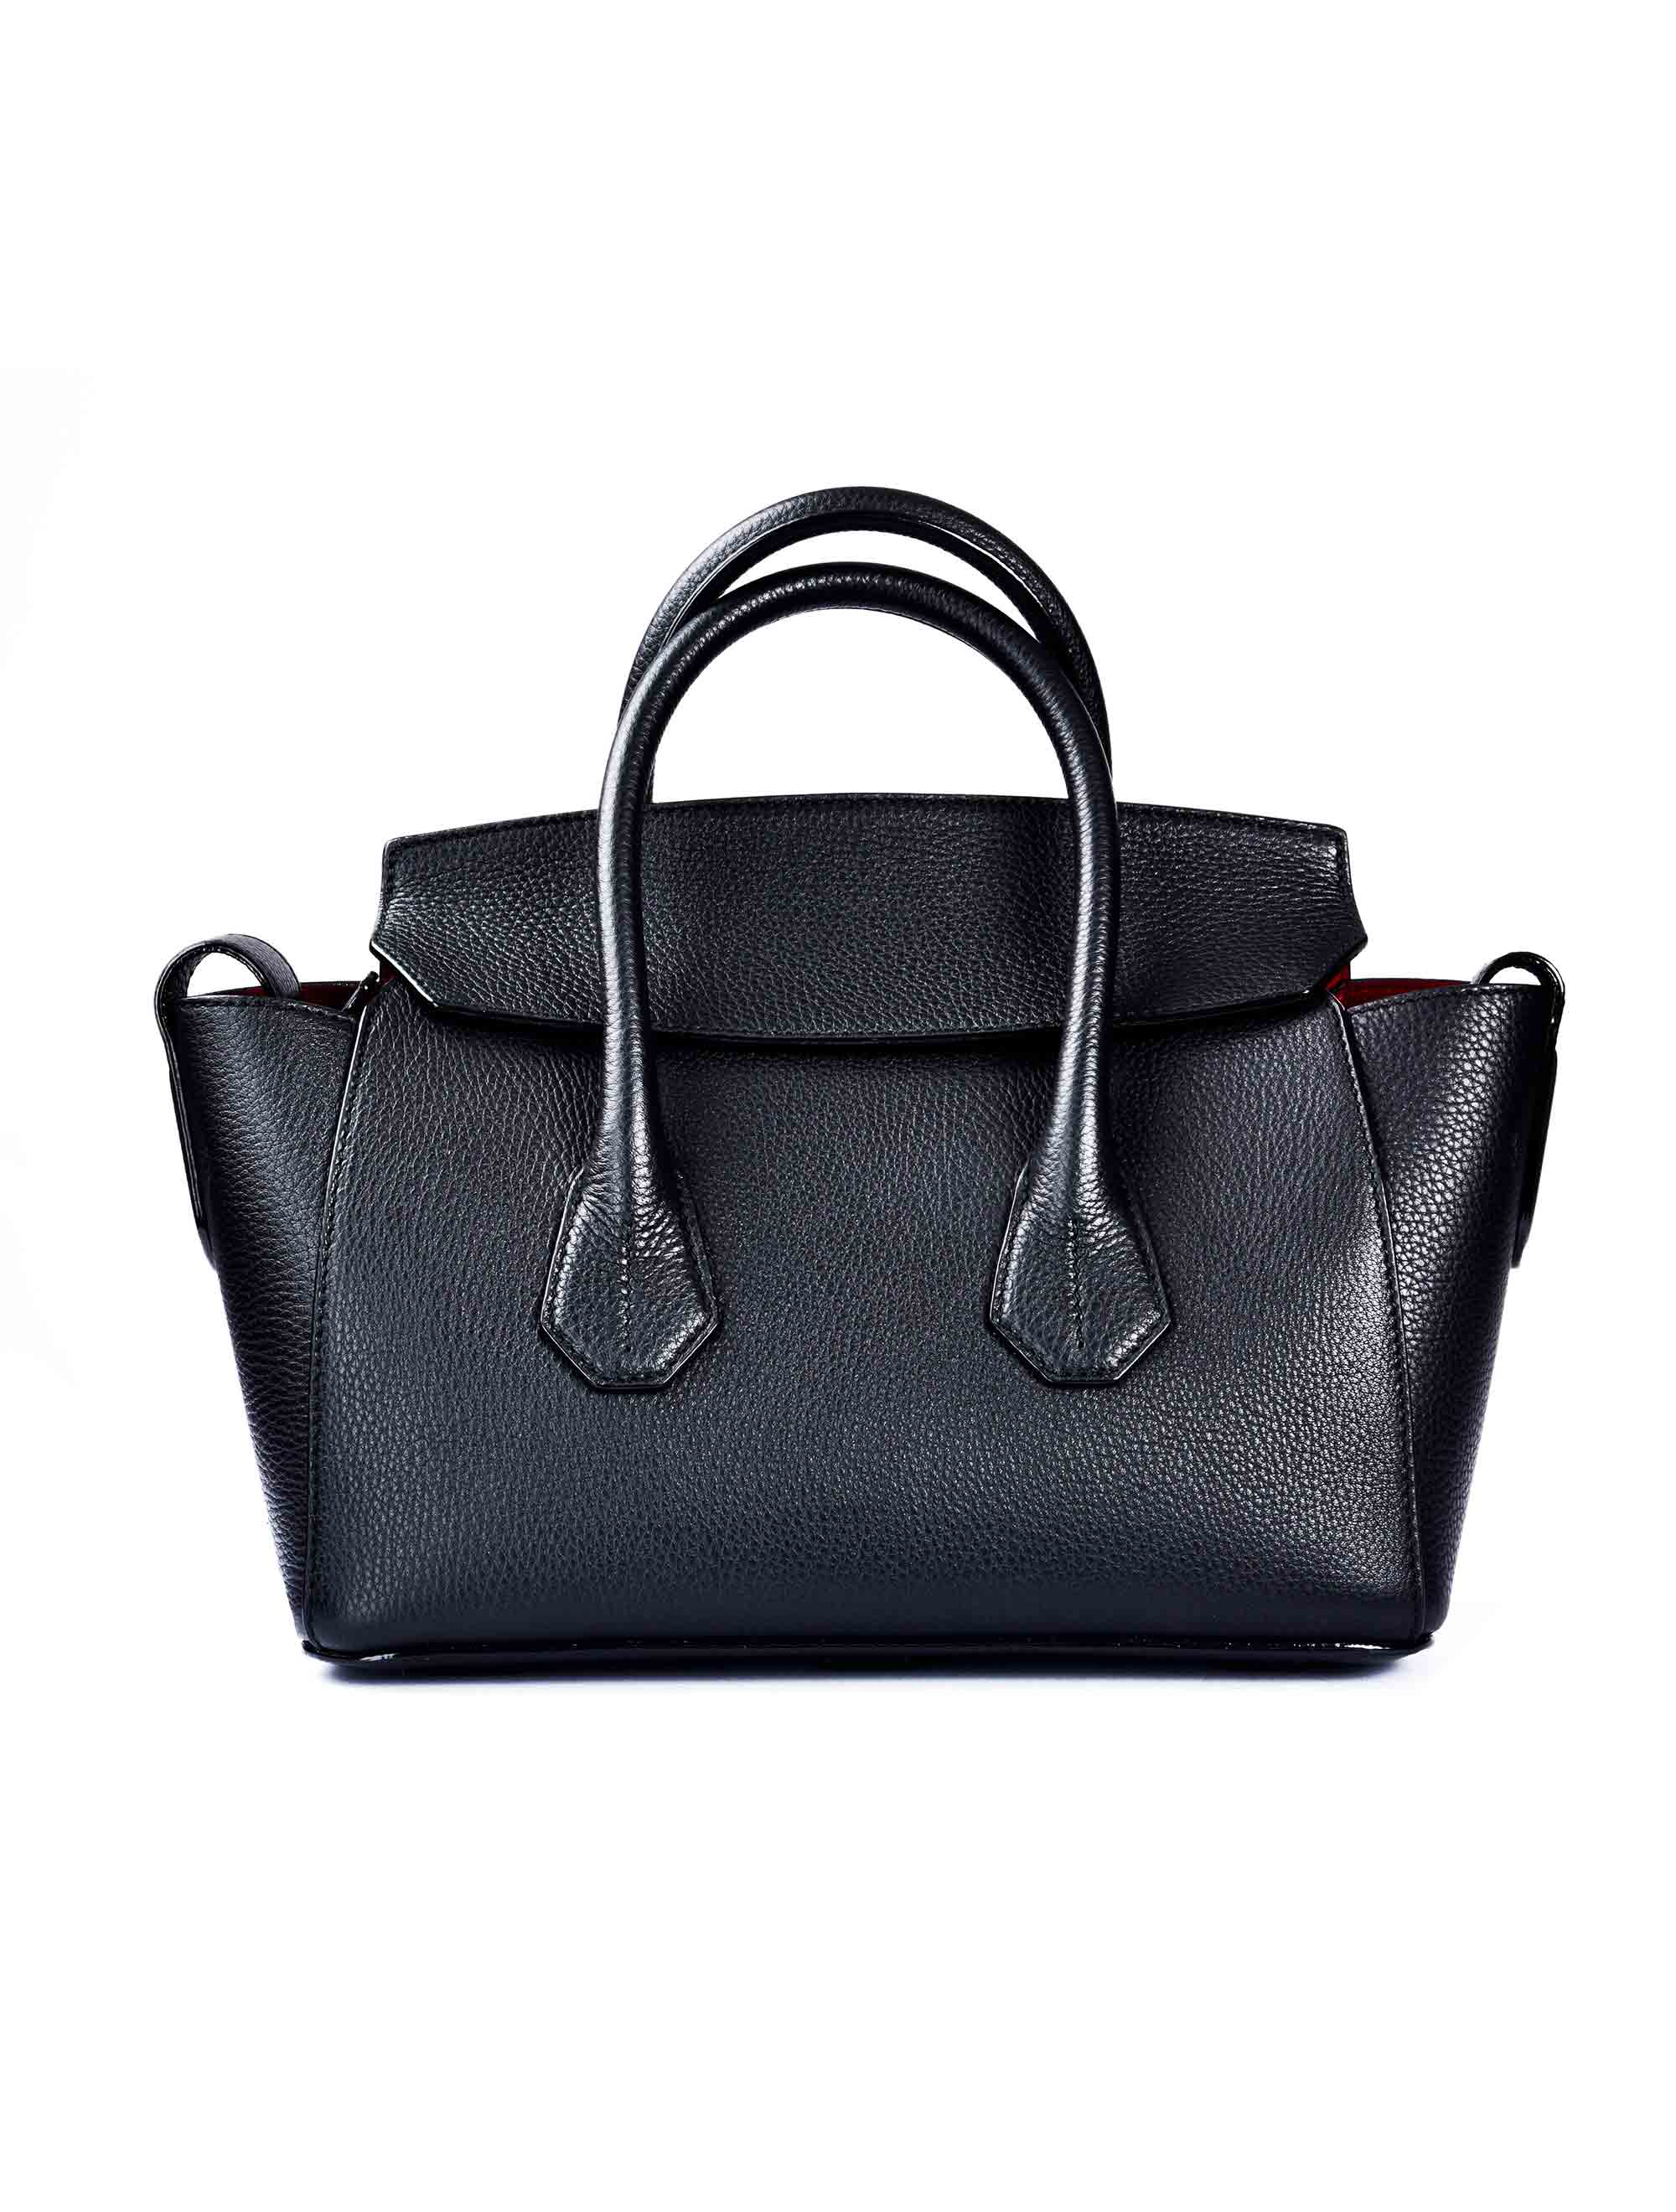 SMALL SOMMET TOTE